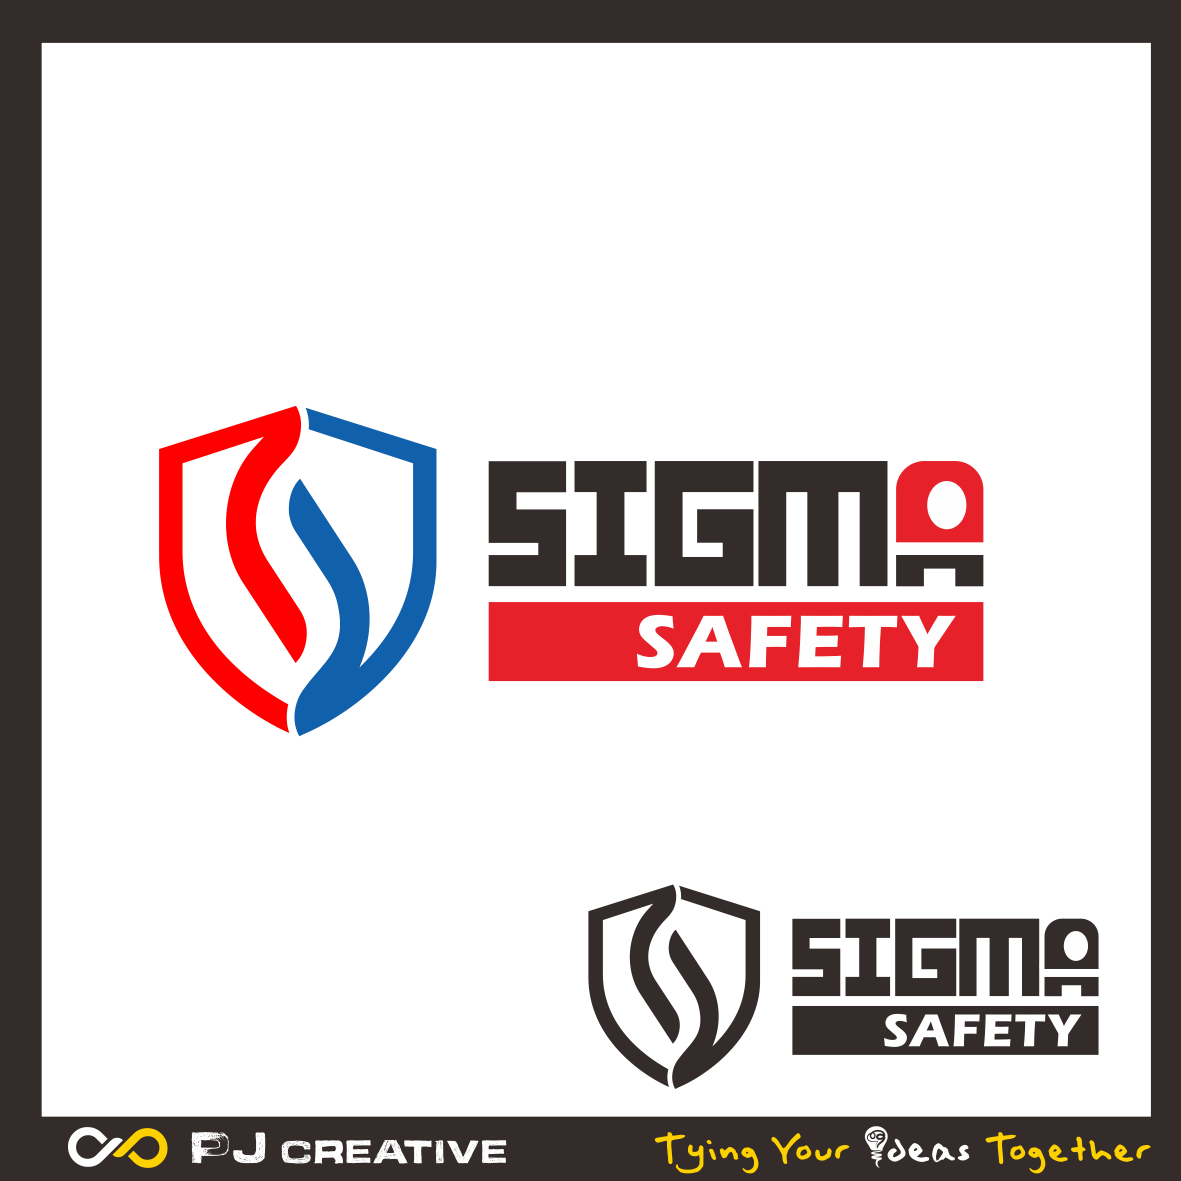 Logo Design by PJD - Entry No. 226 in the Logo Design Contest Creative Logo Design for Sigma Safety Corporation.